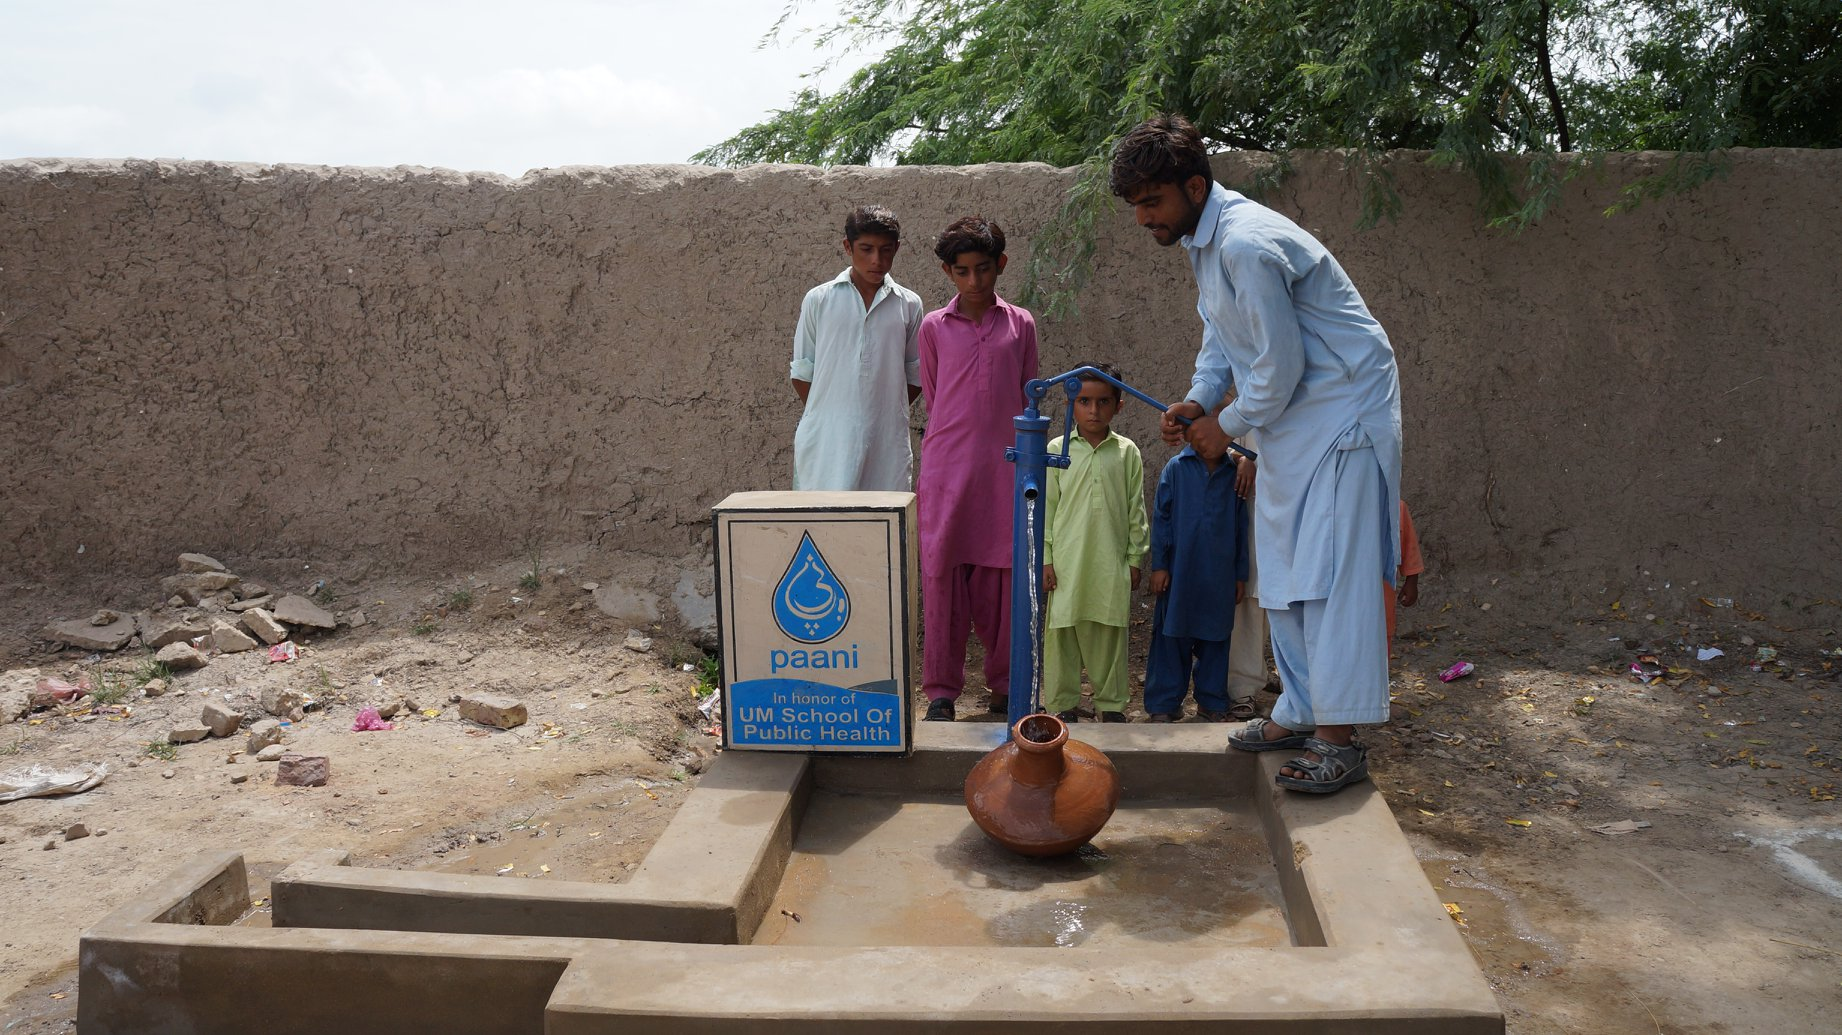 well being operated in rural Pakistan